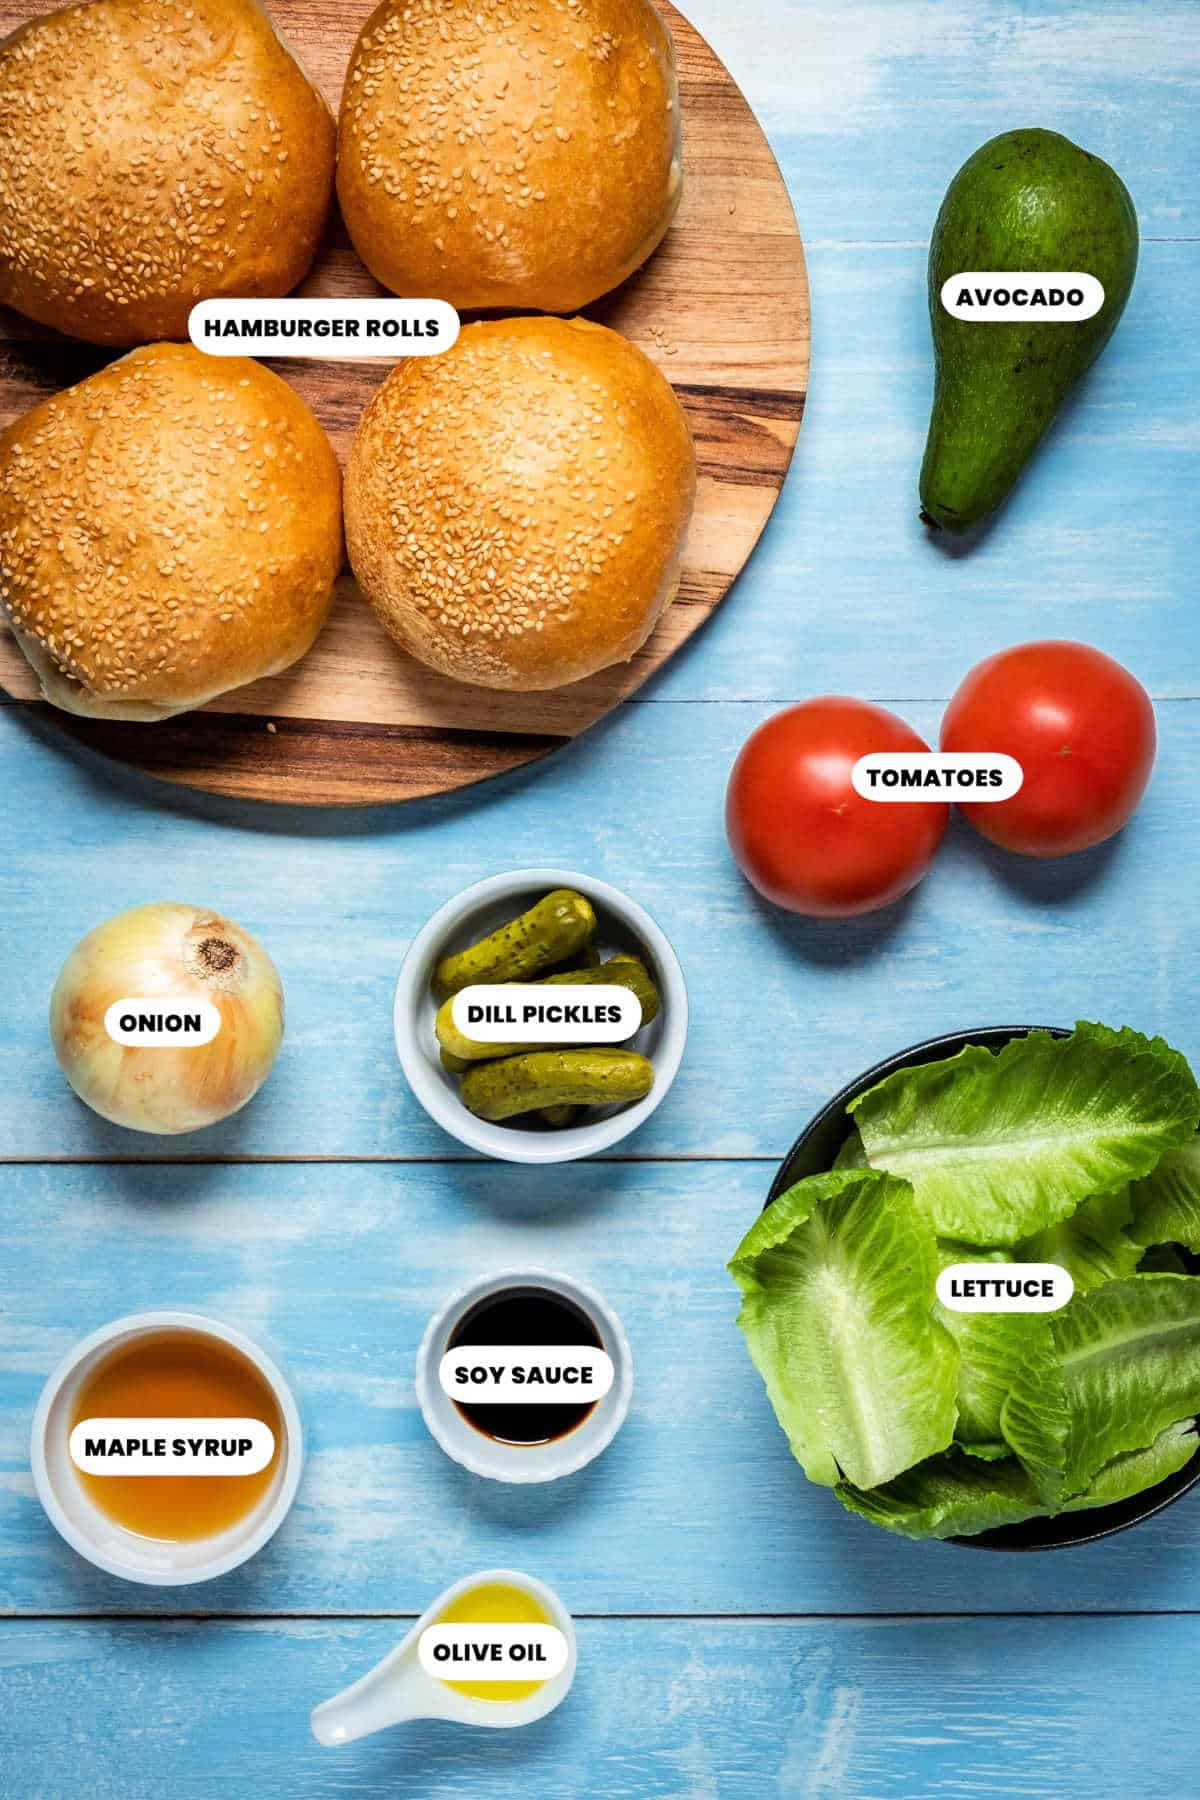 Photo of the ingredients for making up the burgers.